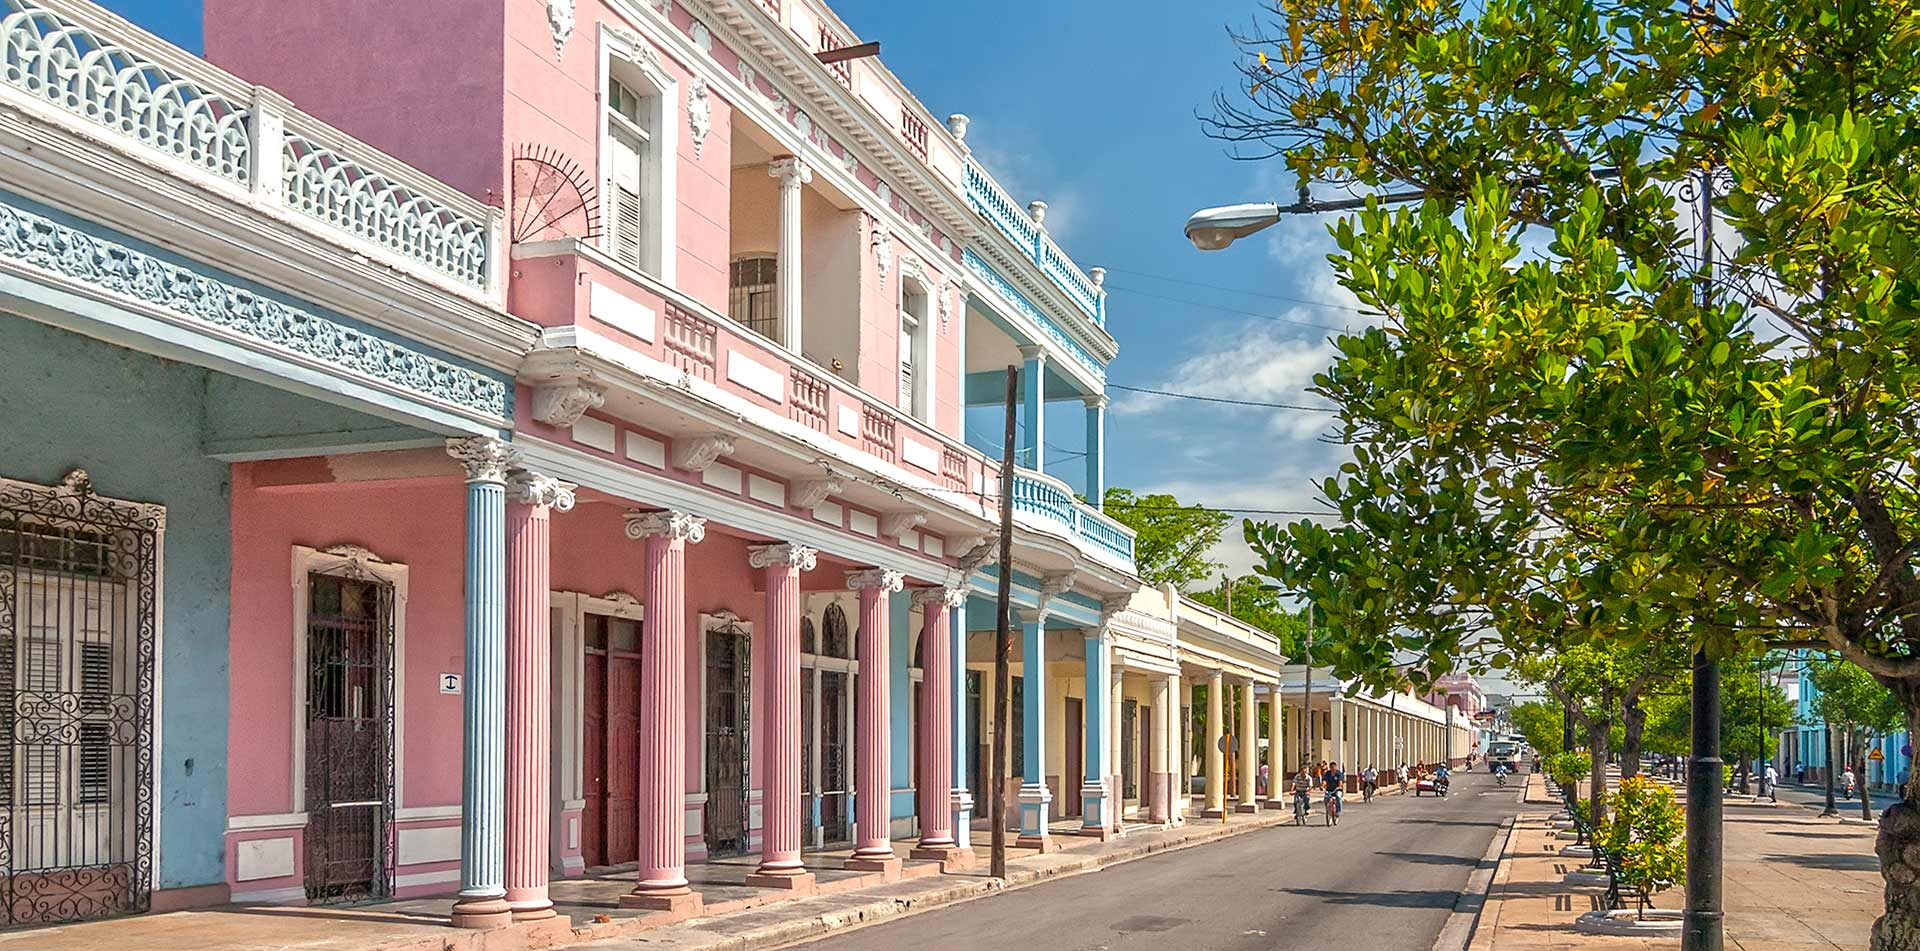 Traditional Colonial Style Buildings in Cienfuegos, Cuba